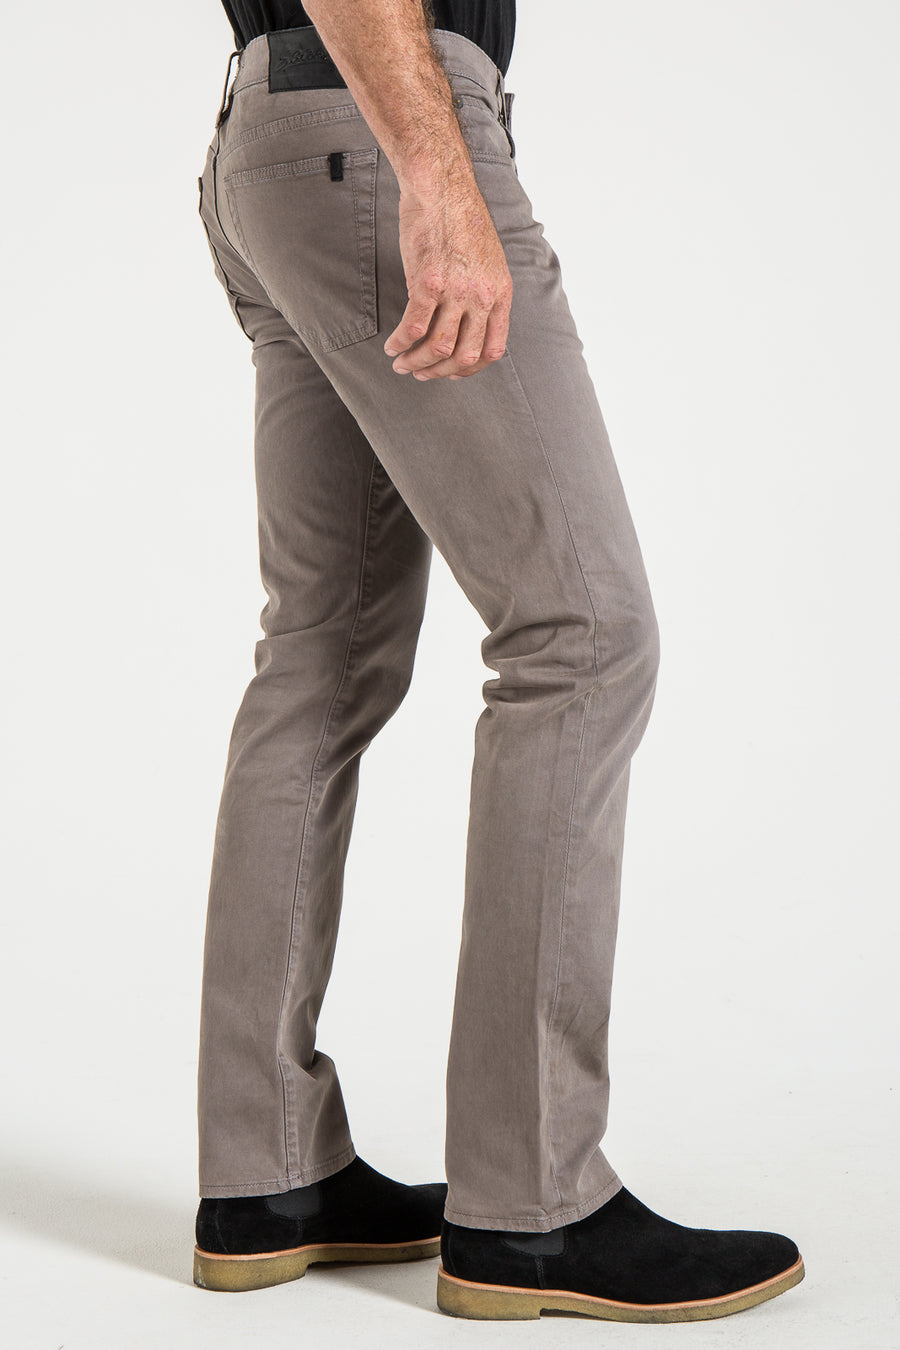 BARFLY SLIM IN TOWER SATEEN TWILL